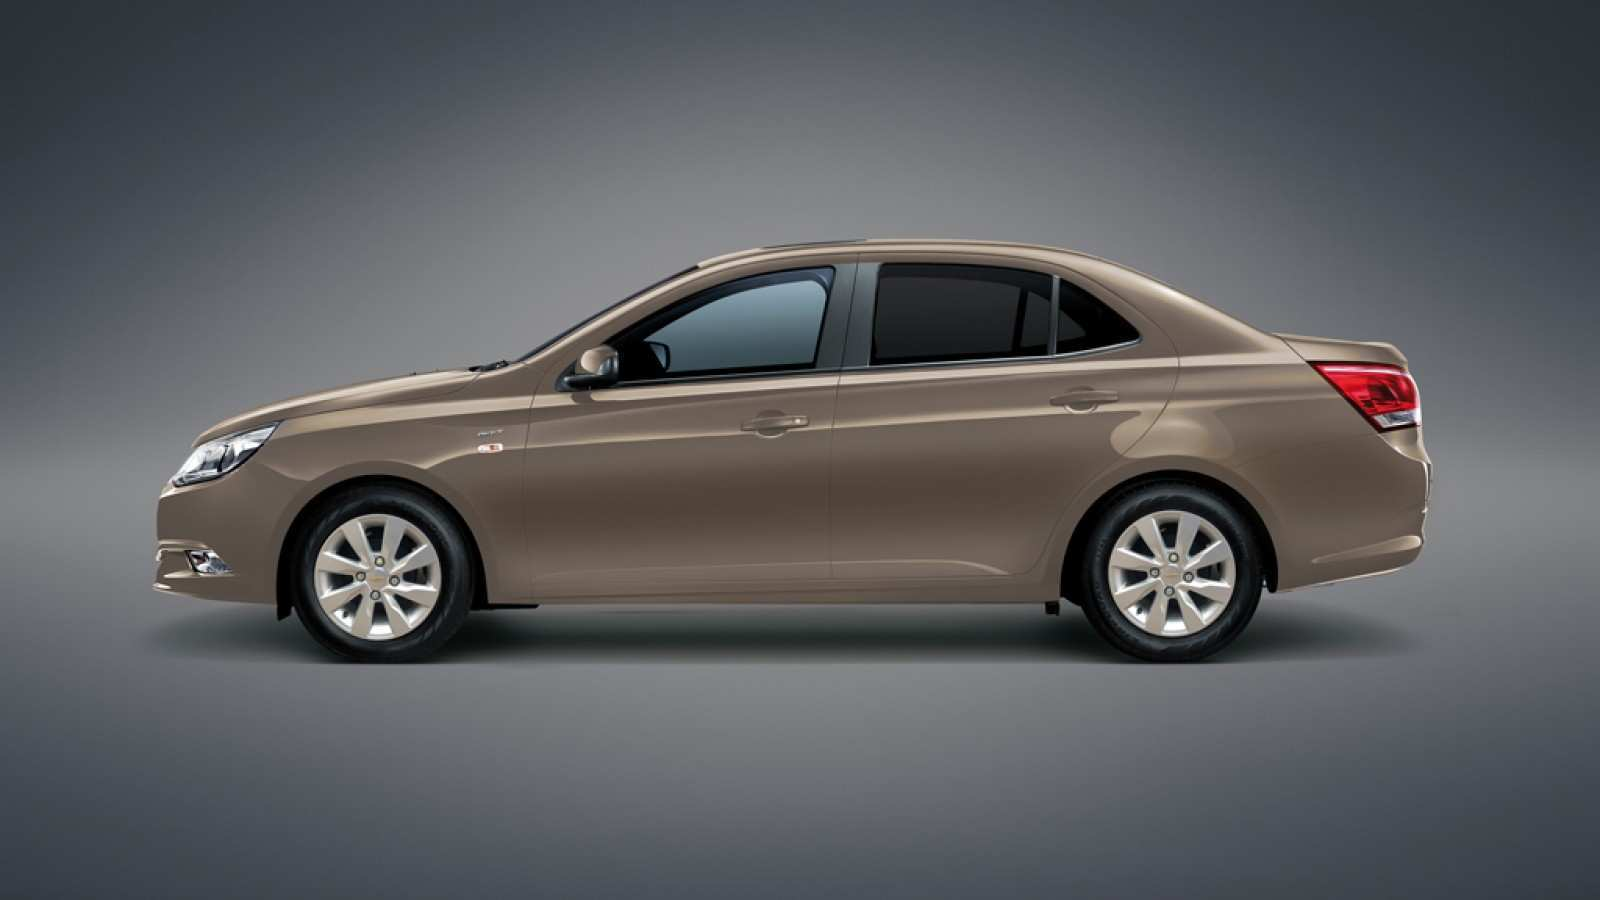 69 Gallery of Chevrolet Optra 2019 Interior with Chevrolet Optra 2019